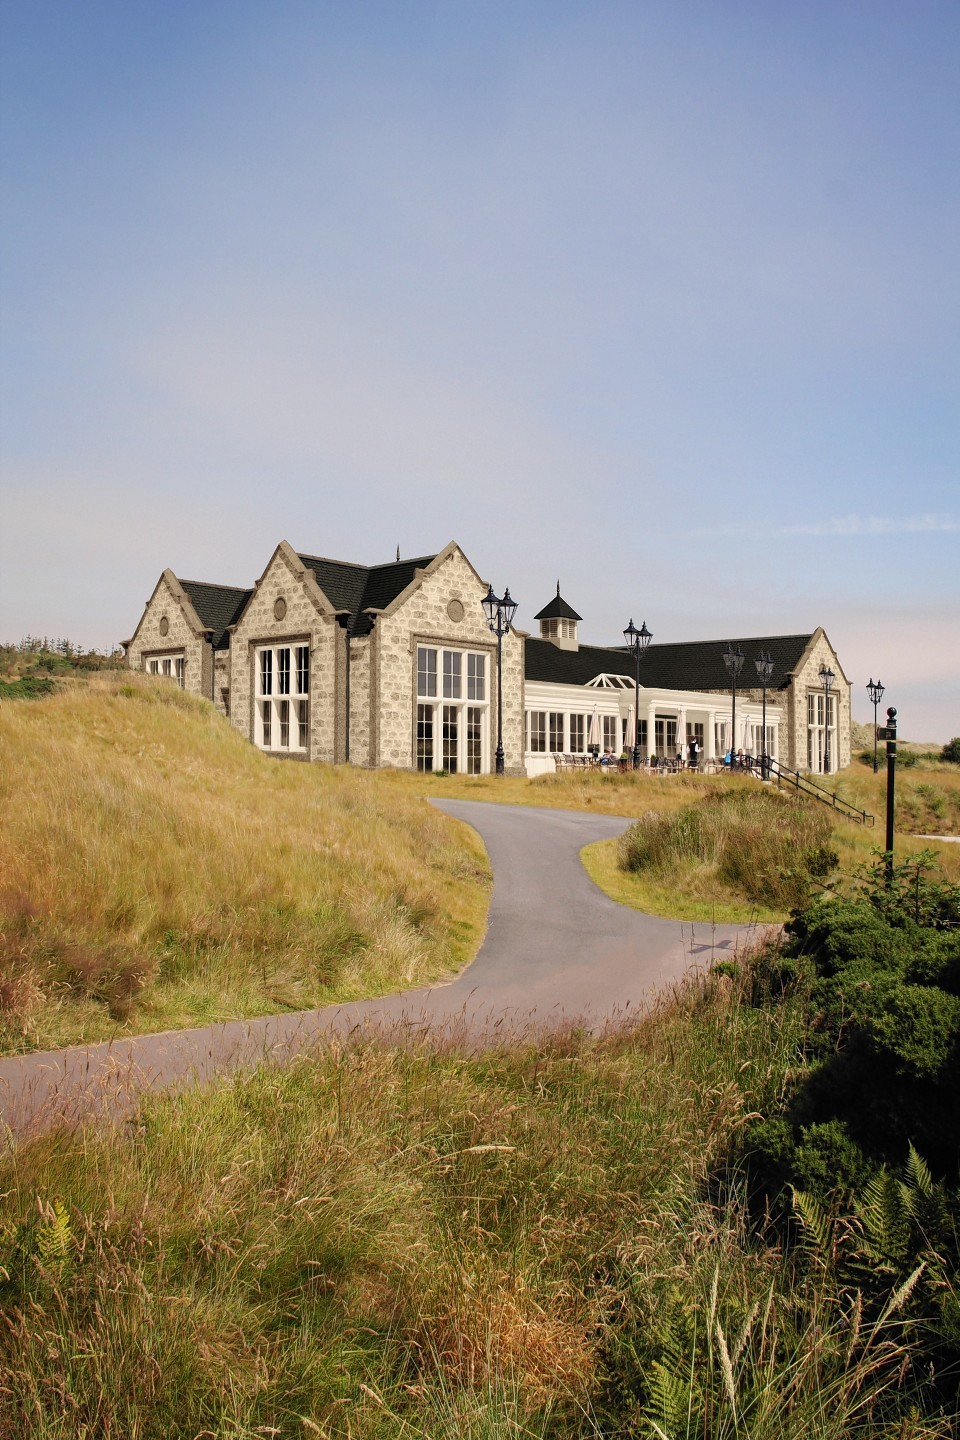 A first look at Donald Trump's planned new clubhouse for his Aberdeenshire golf resort